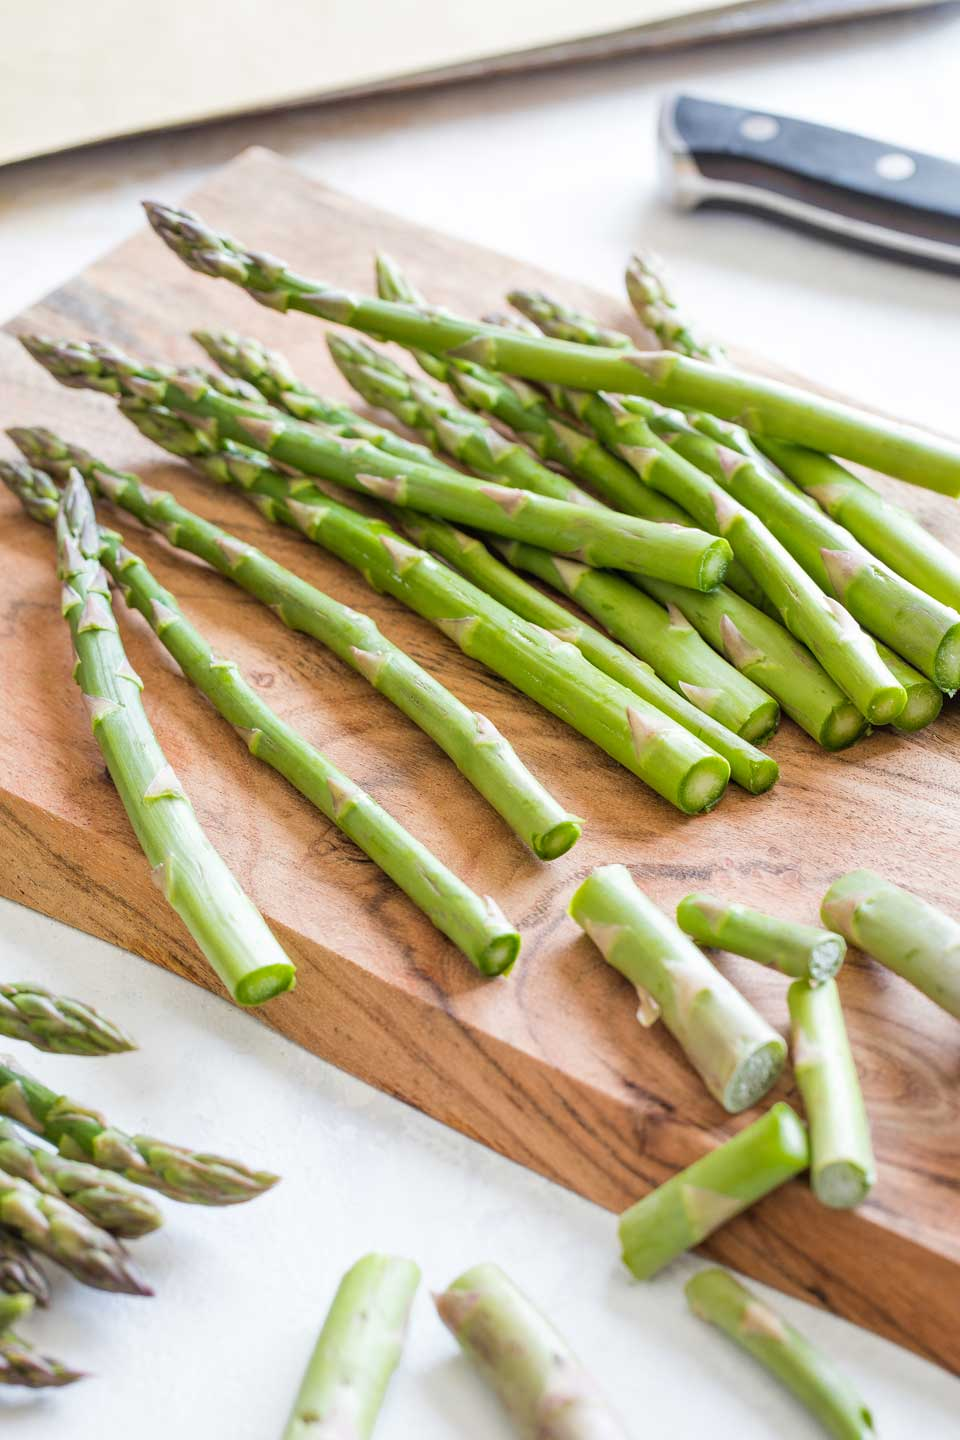 13 asparagus stalks on a wooden cutting board, with the bottom inch or two just sliced off and the discarded ends laying about nearby.